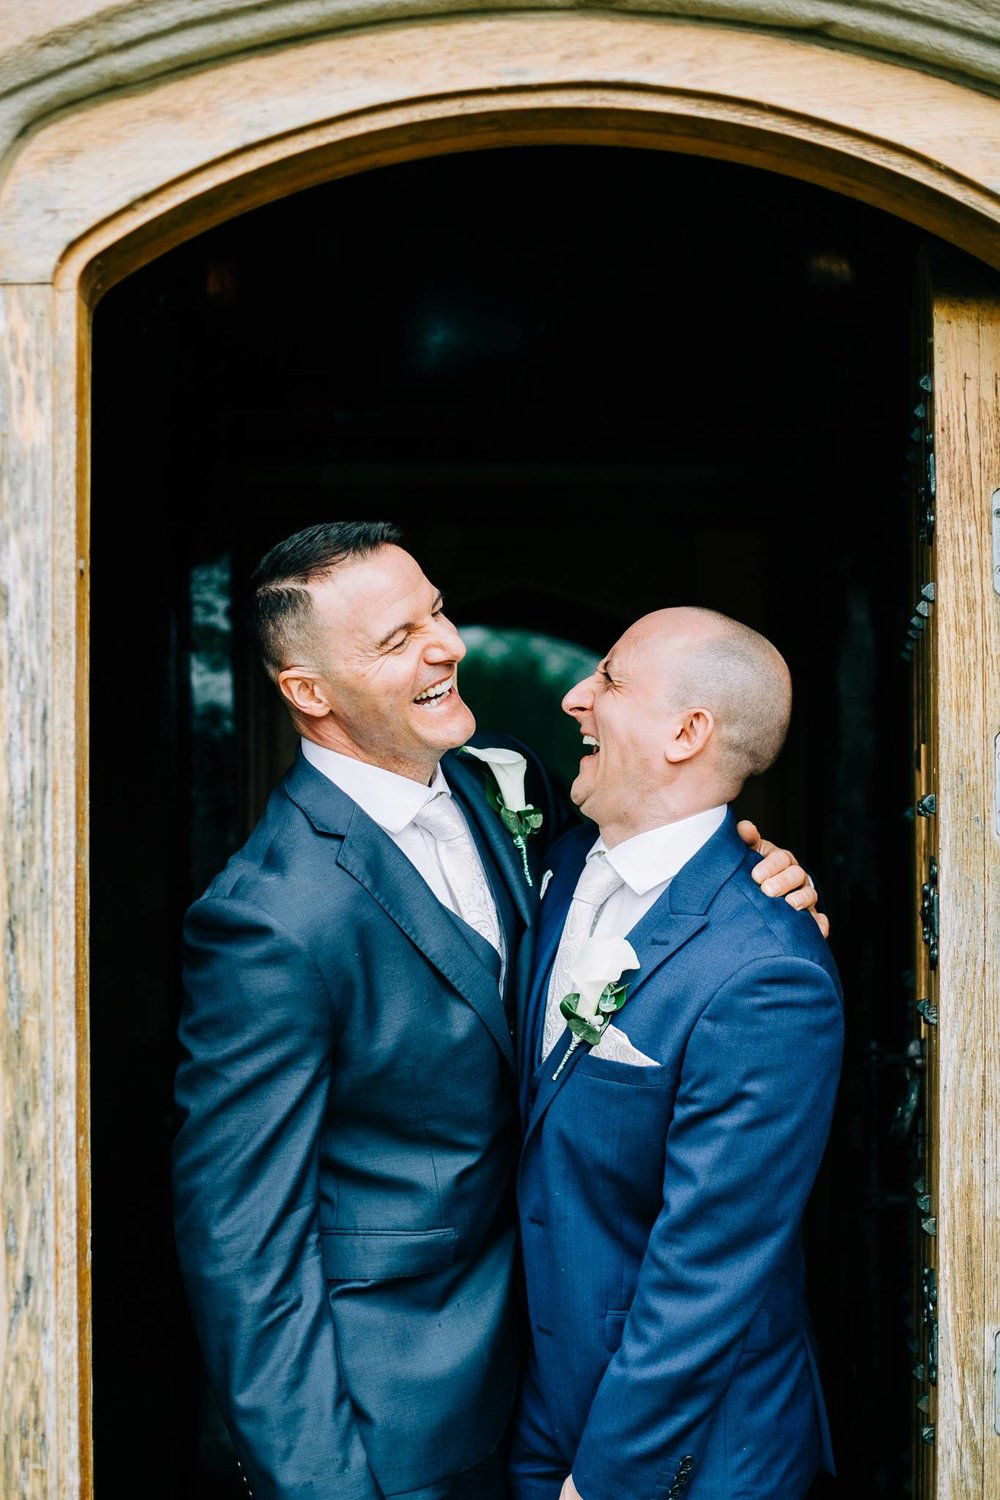 Natural wedding photography Manchester - Clare Robinson Photography_0015.jpg